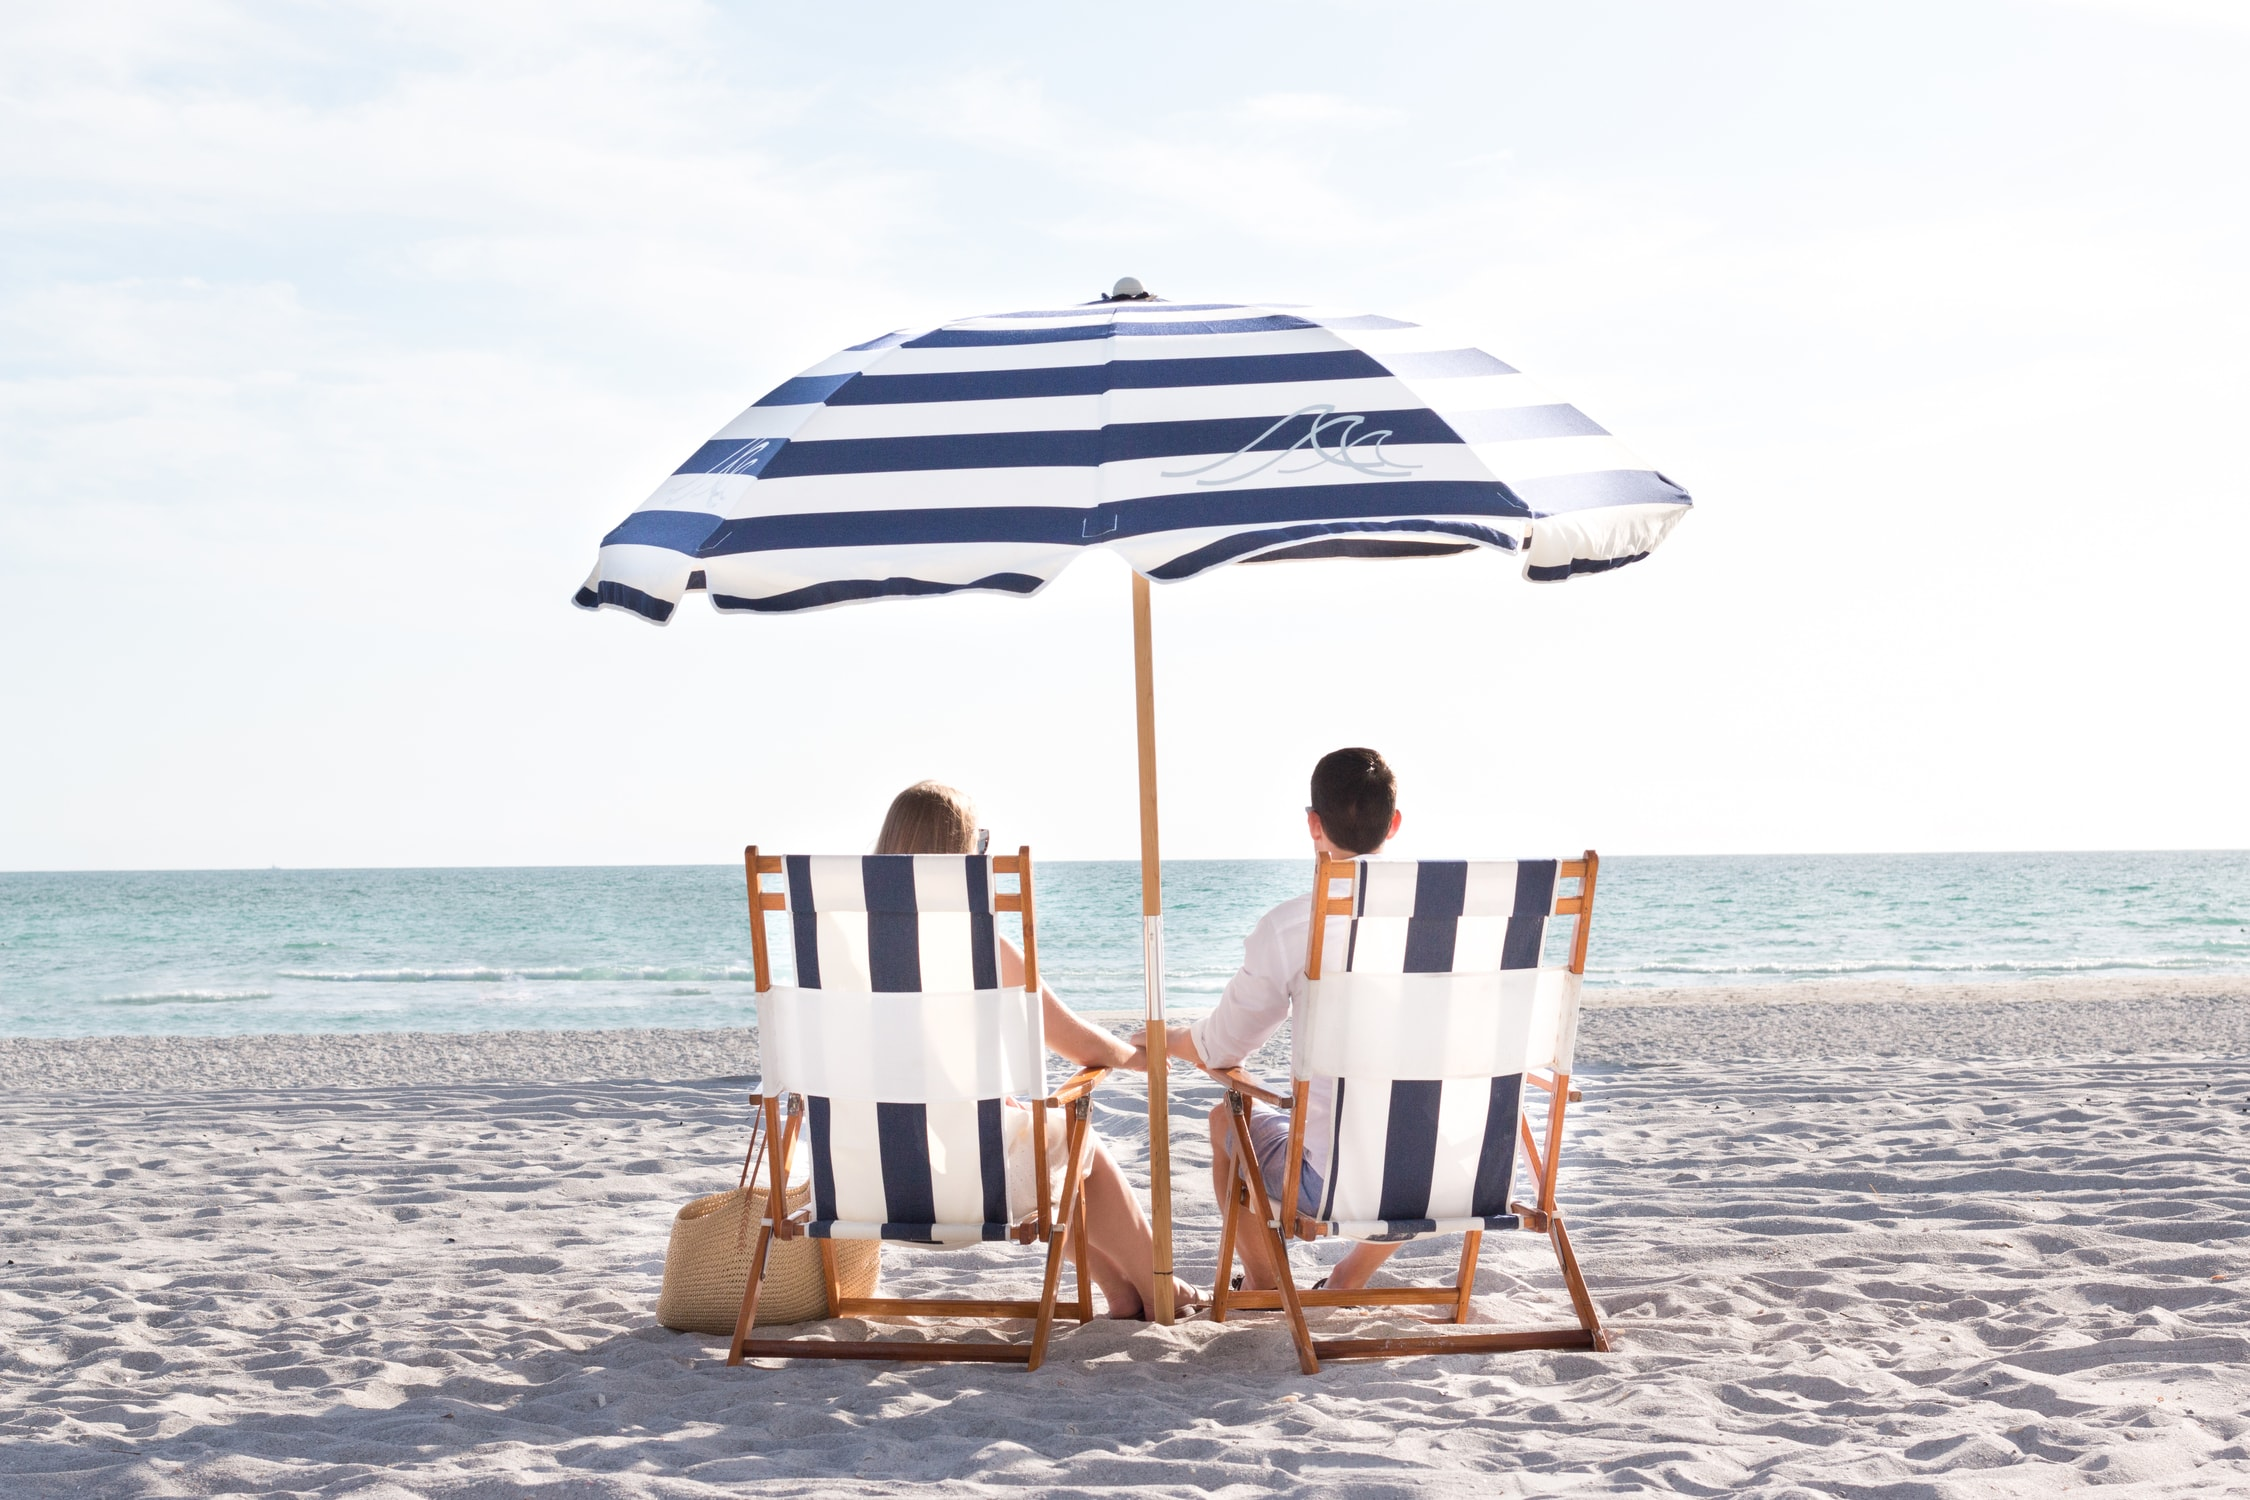 How to plan a romantic weekend getaway in Longboat Key, Florida, including a relaxing stay at The Resort at Longboat Key Club! #LoveFL sponsored by @visitflorida | Private beach outside of The Resort at Longboat Key Club | Florida travel tips, beach vacation, vacation ideas, vacation goals, travel blogger Ashley Brooke Nicholas, Florida travel guide, Longboat Key travel guide, Sarasota travel guide, beautiful beaches, boating, affordable travel, US travel, summer vacation, spring break ideas, romantic vacation